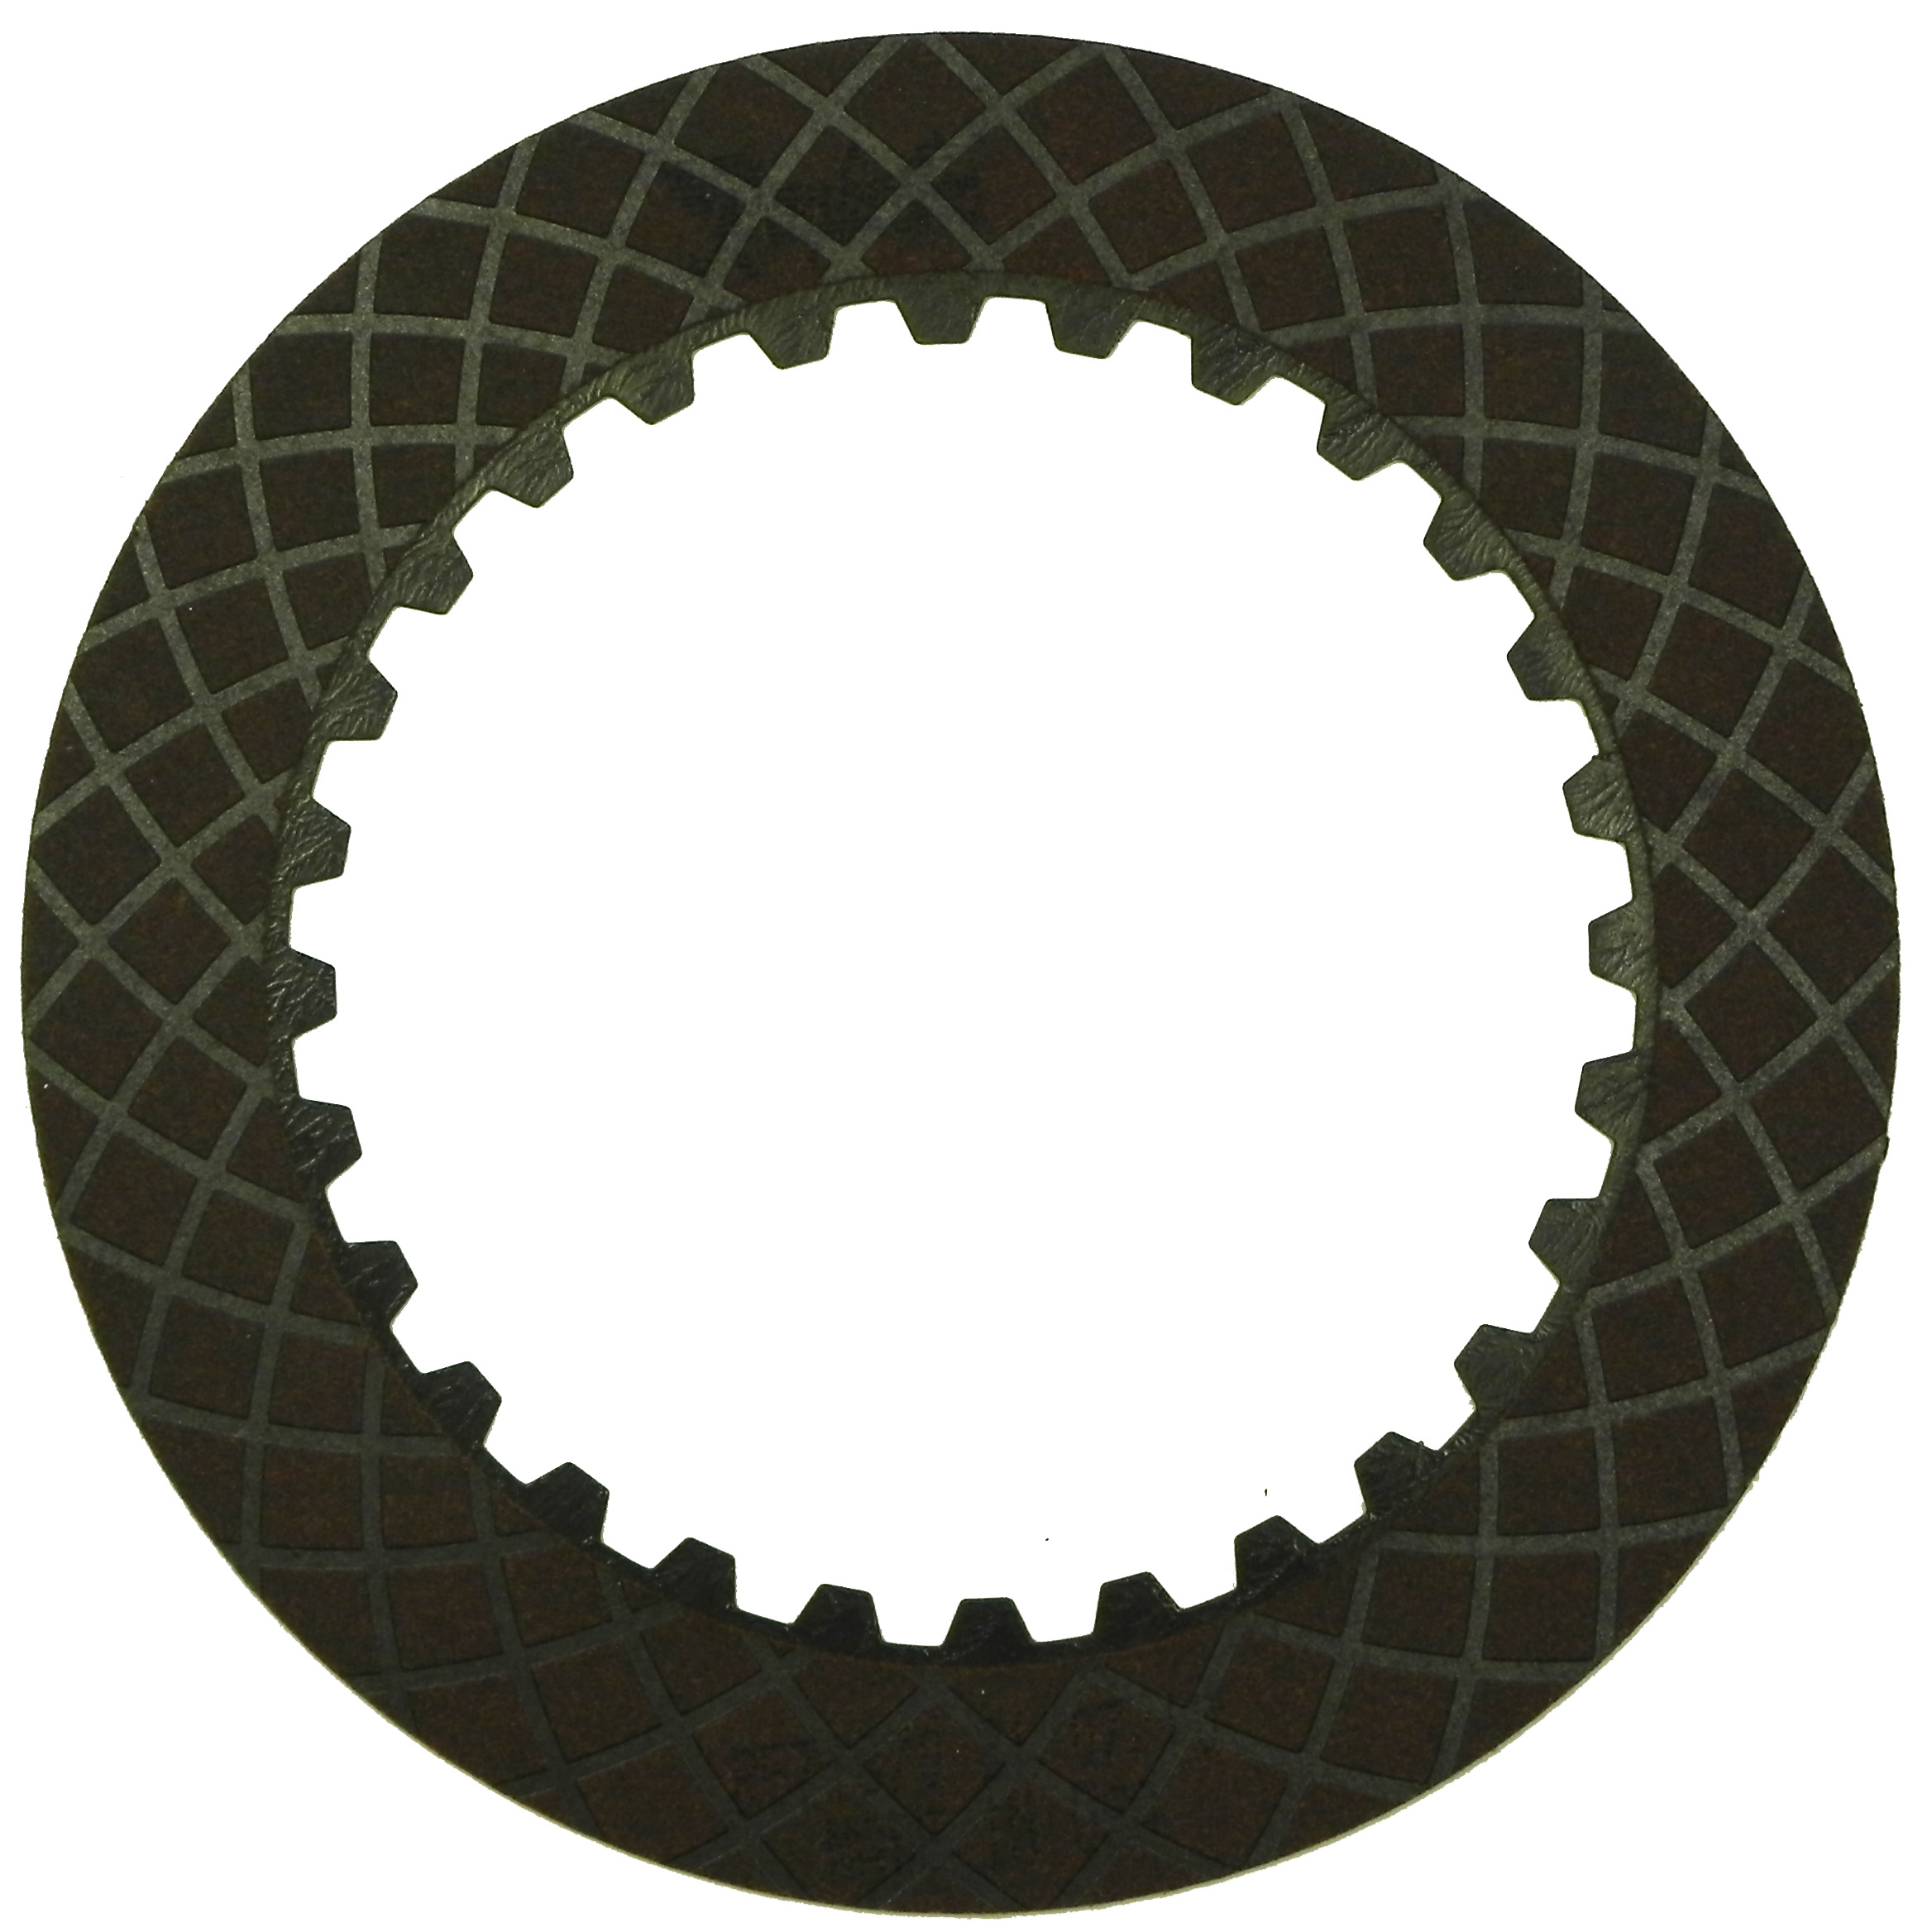 R571870 | 2008-ON Friction Clutch Plate GPX 2nd Clutch GPX